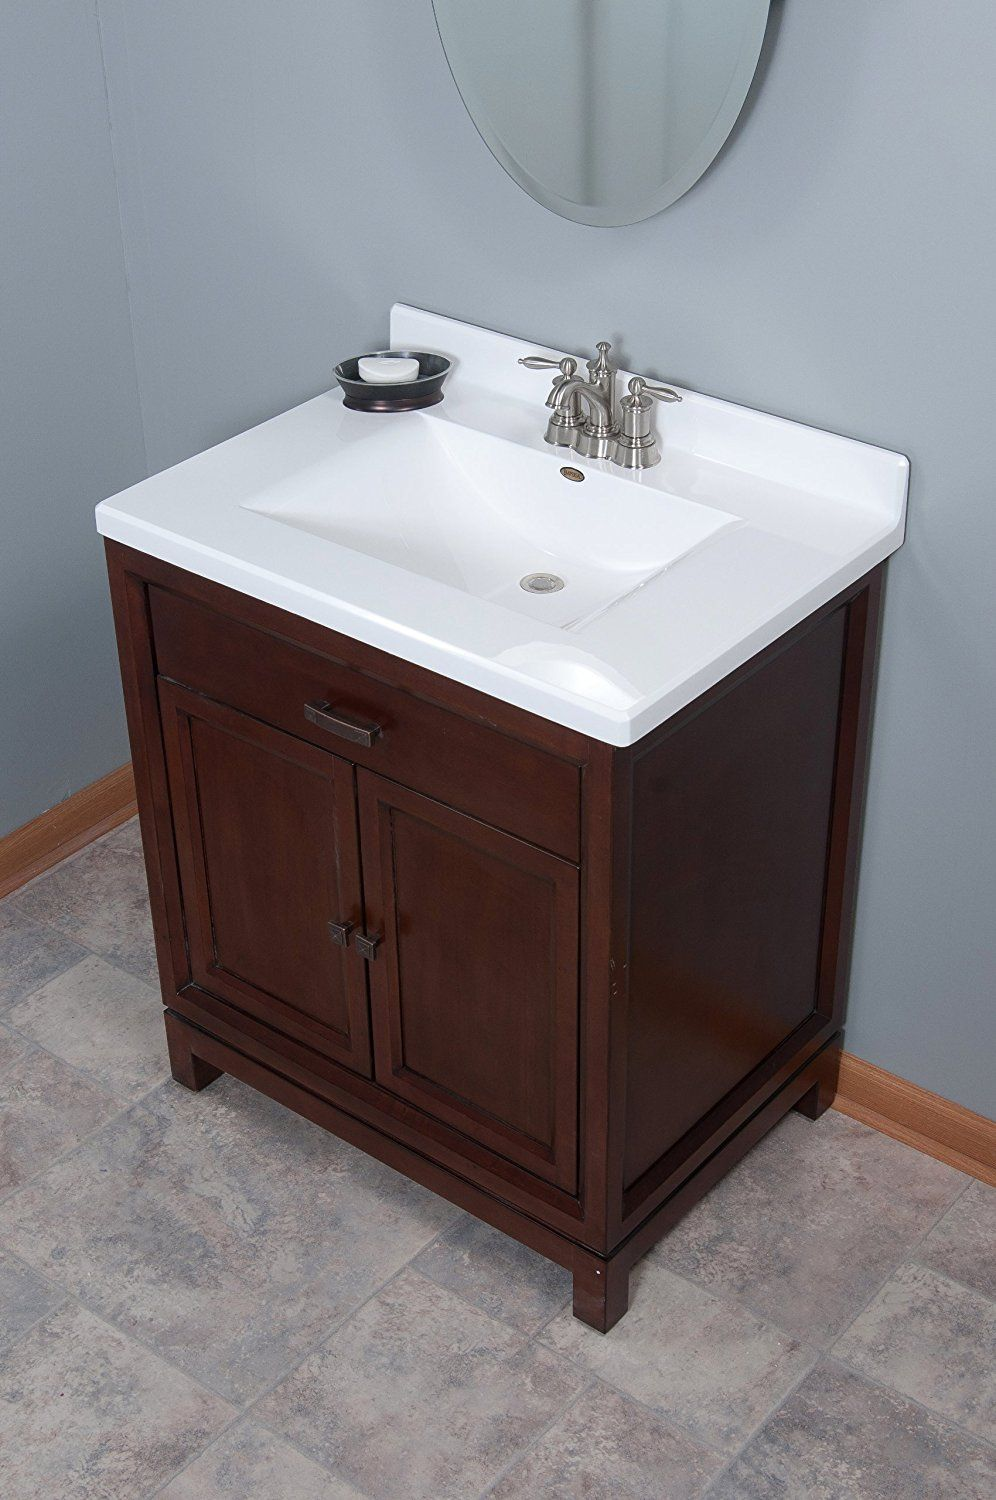 31 inch bathroom vanity. Cool 31 Inch Bathroom Vanity , Epic 50 With Additional Interior Designing I